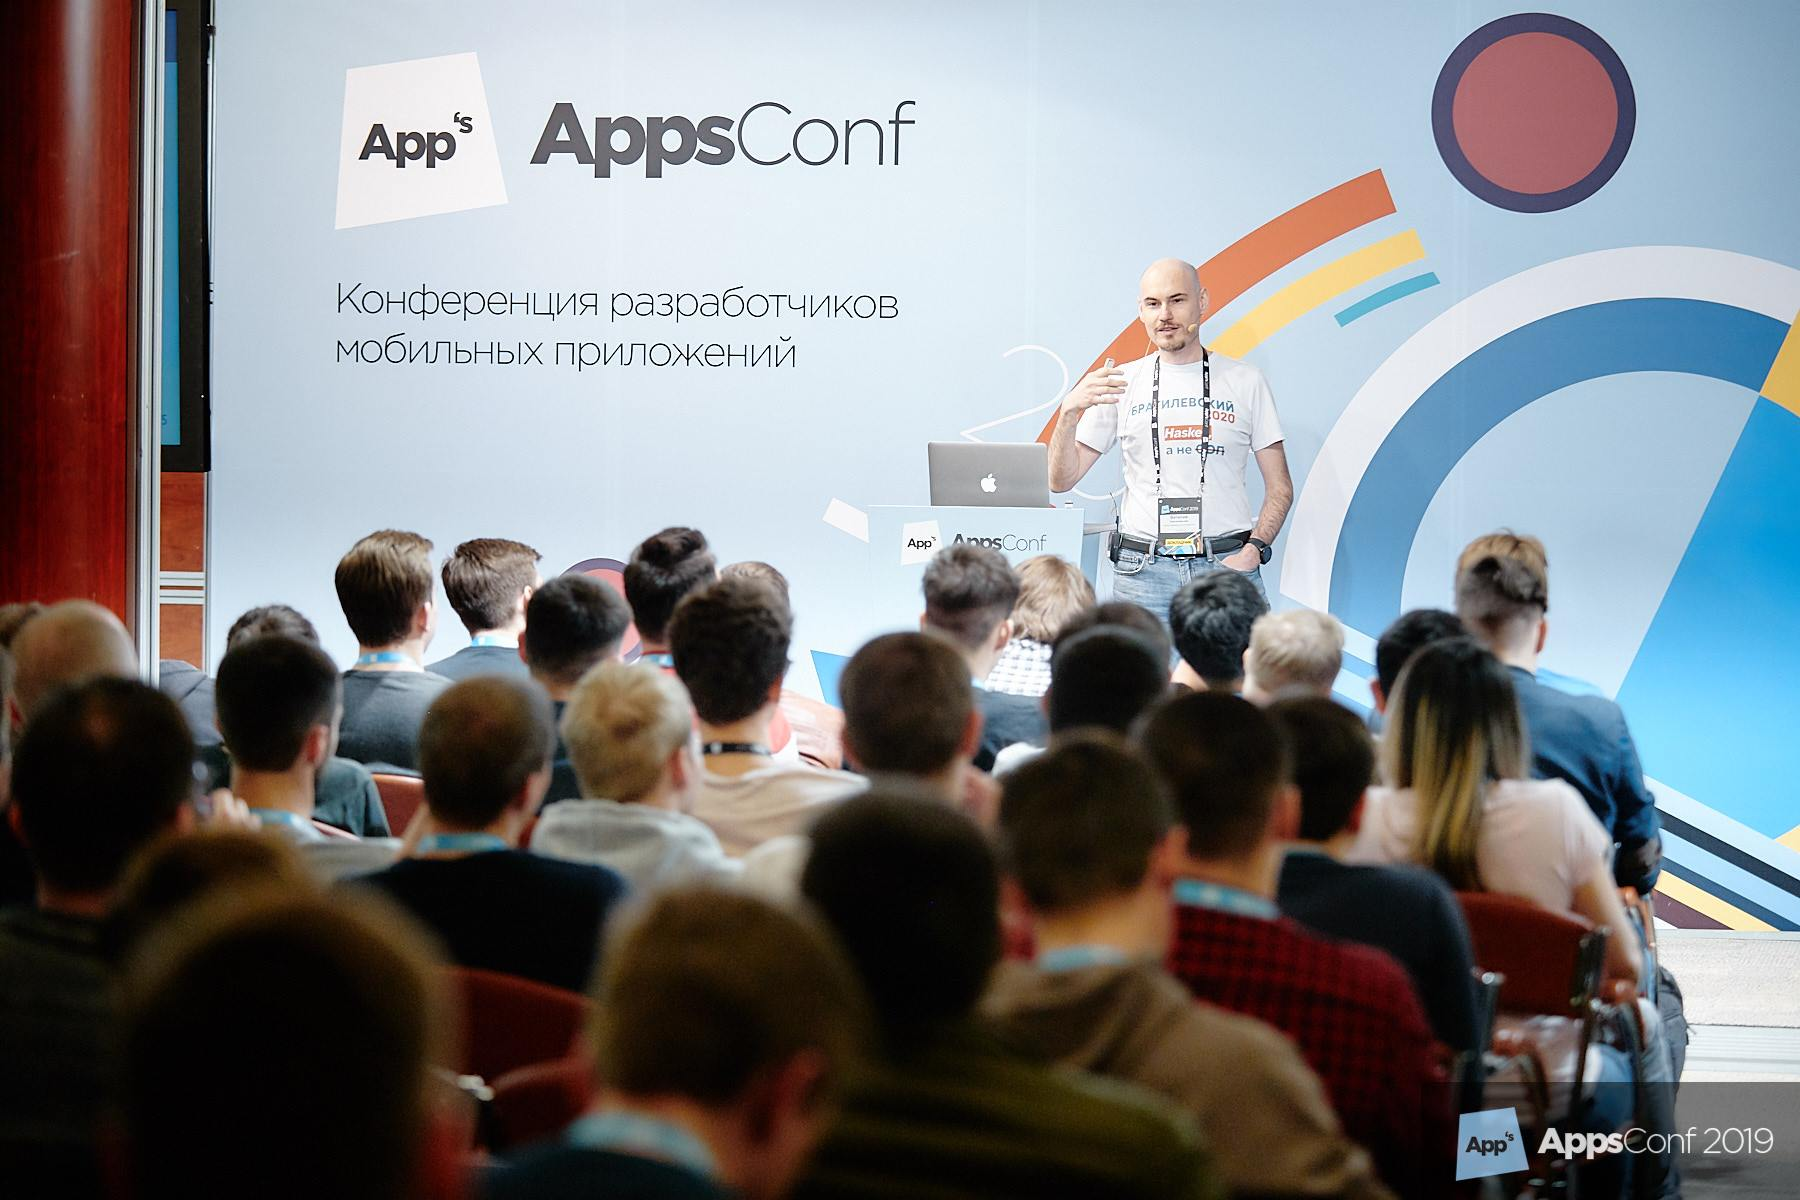 AppsConf to rule them all - 2